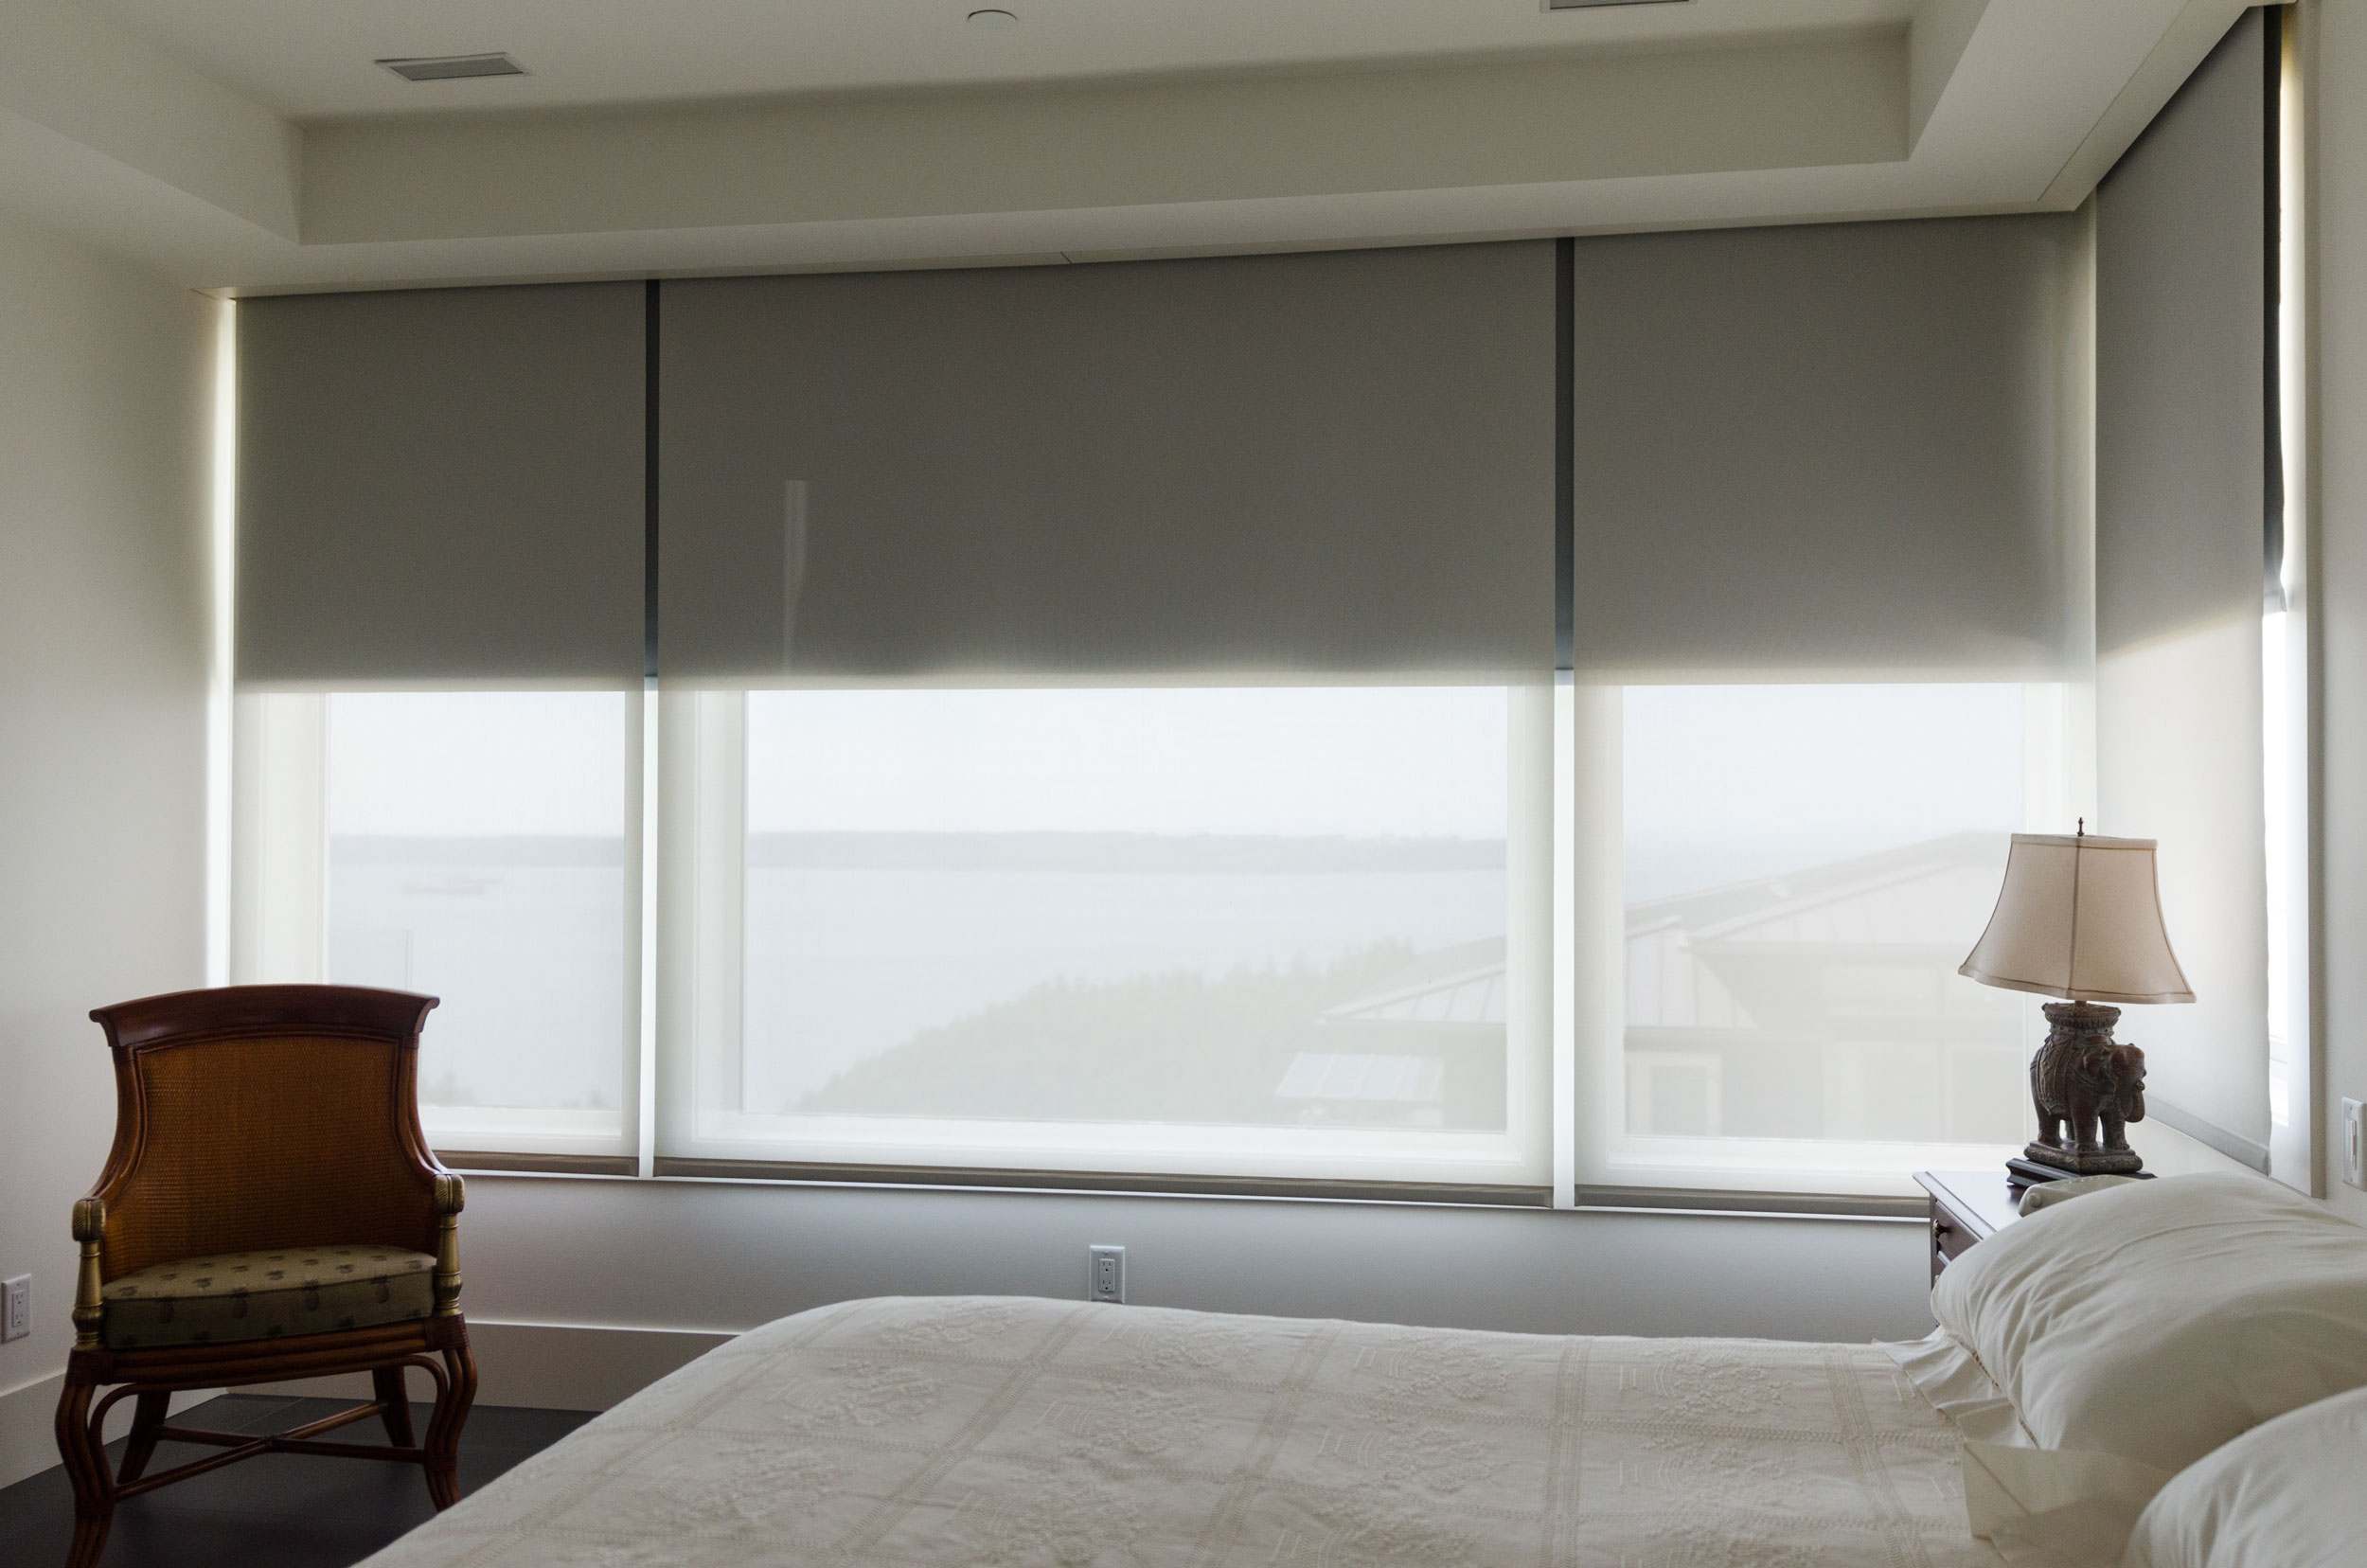 Bedroom Horizontal Blinds